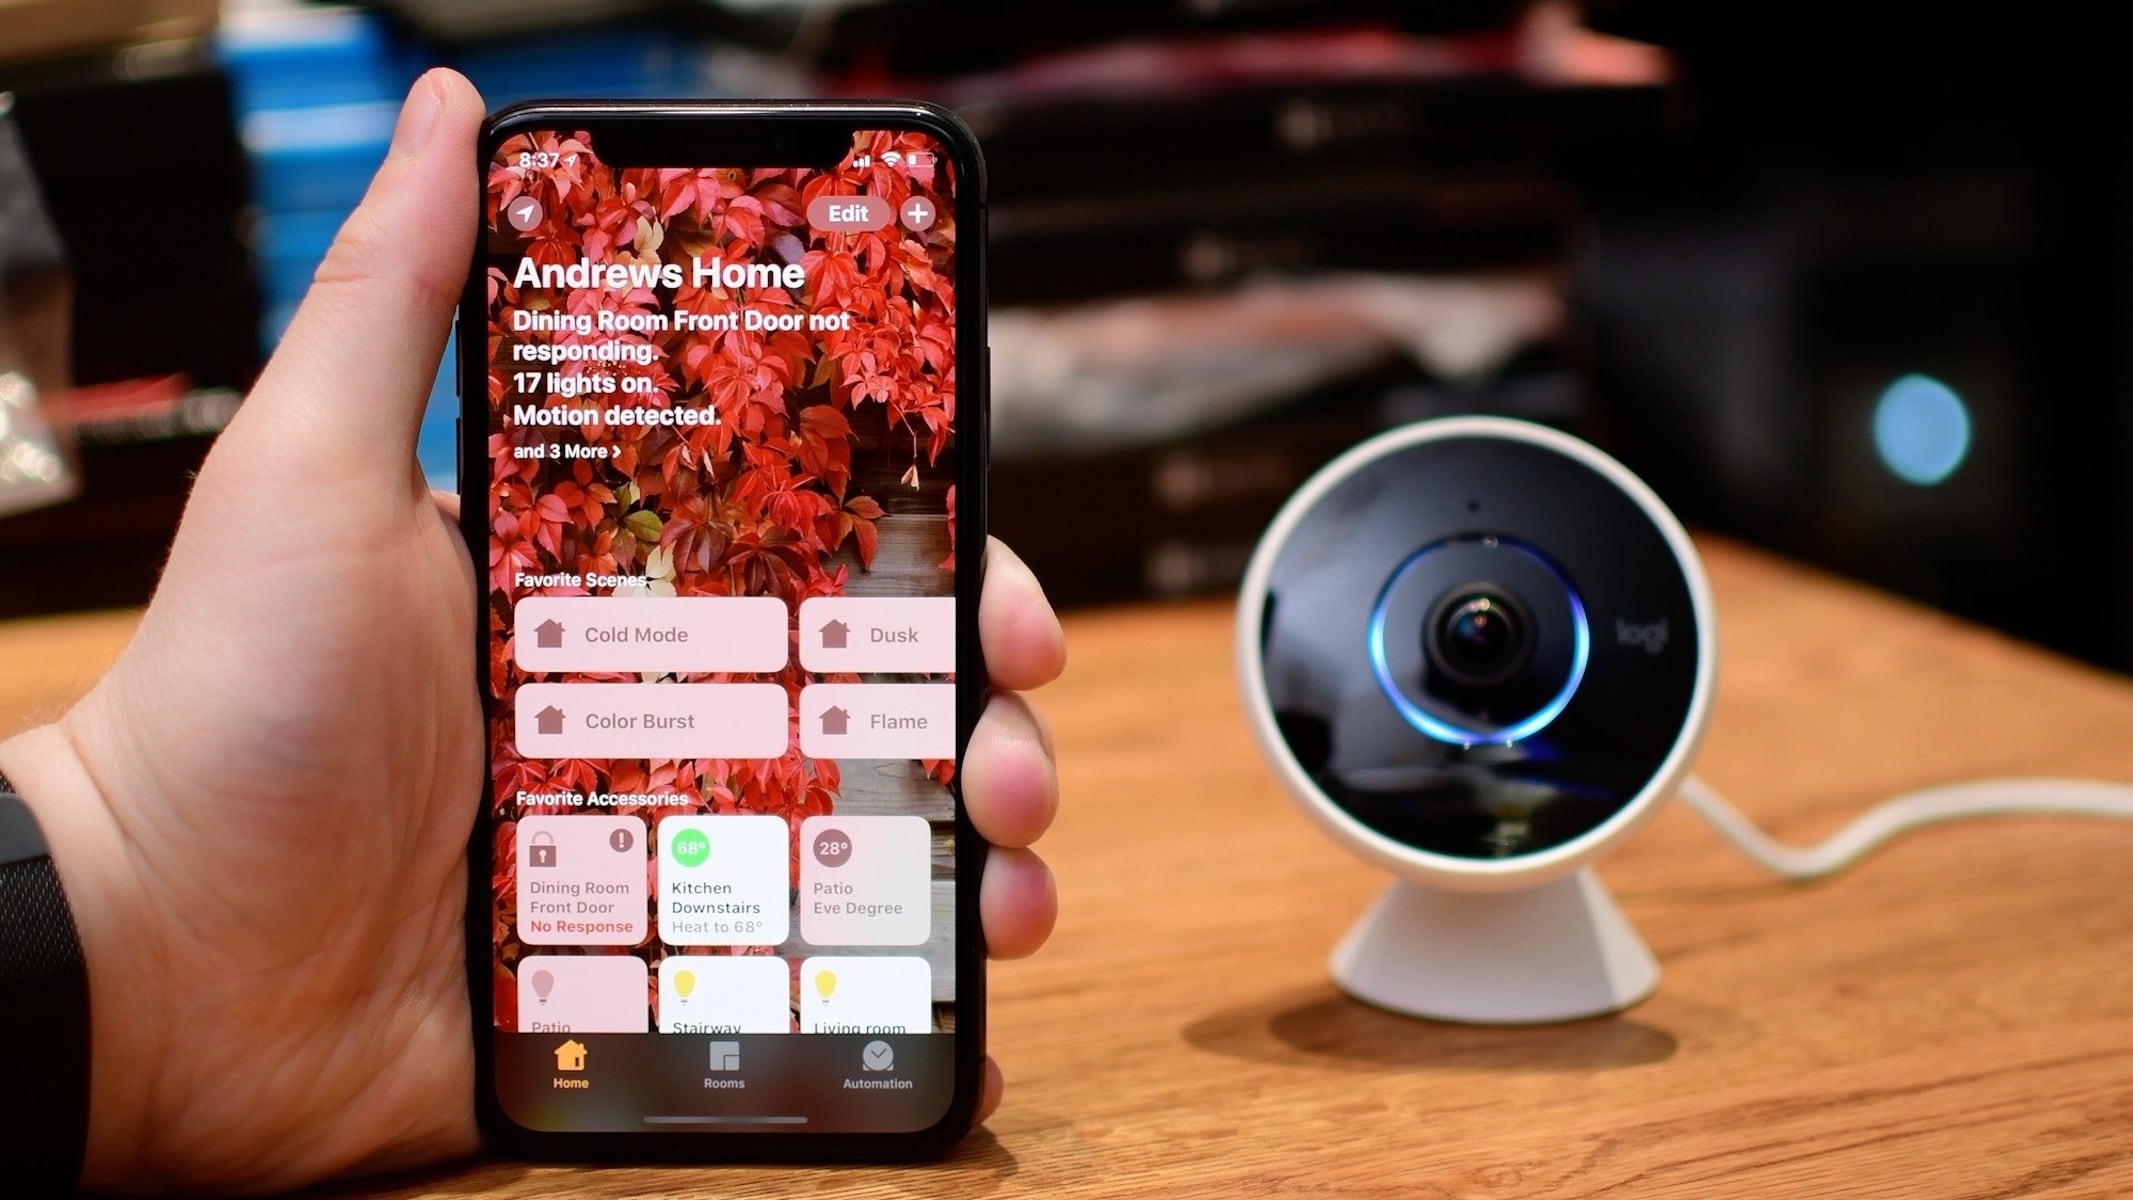 The latest Apple HomeKit-compatible smart home devices